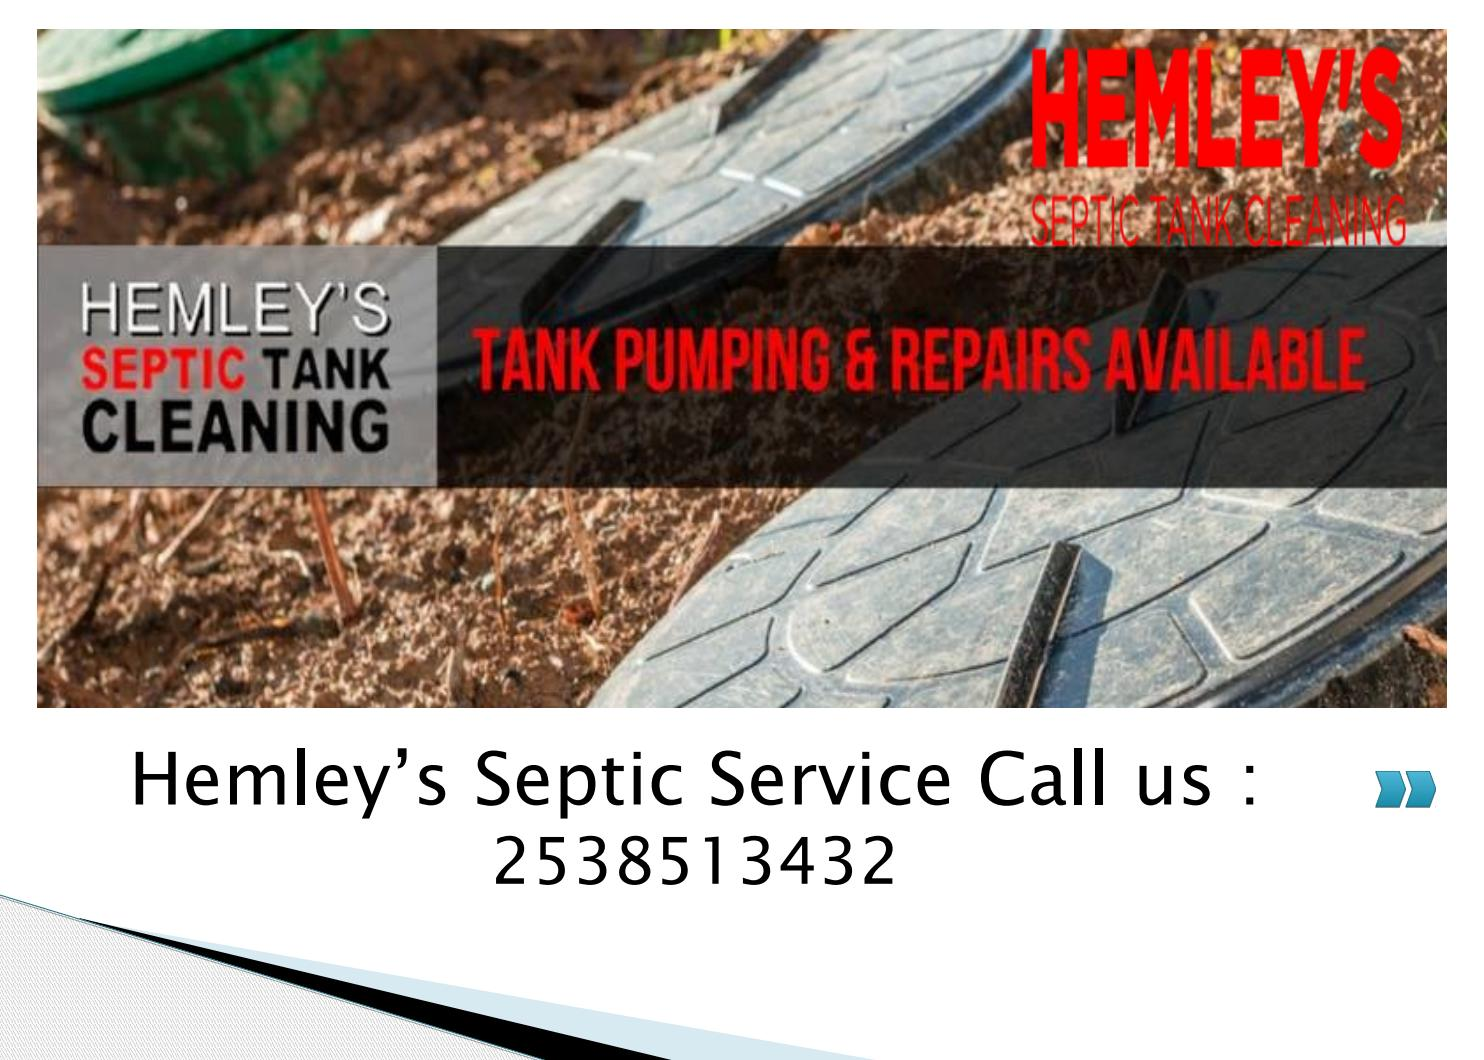 24 Hour Septic Pumping Service by Hemley's Septic Service